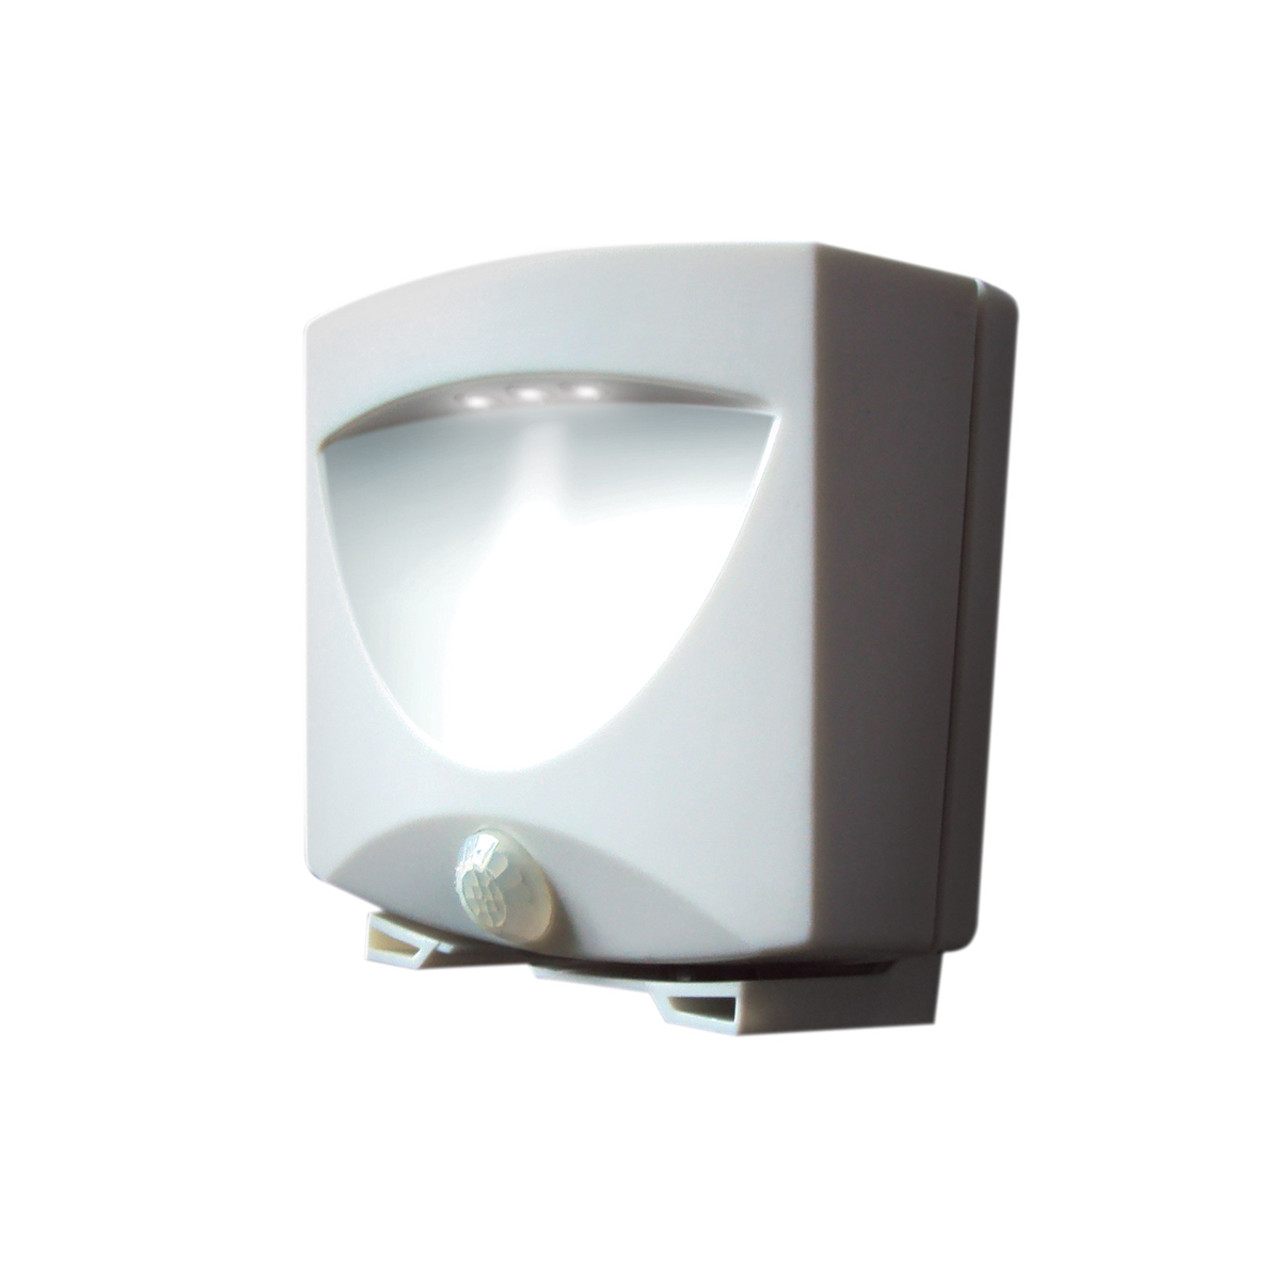 battery powered motion activated outdoor night light in white. Black Bedroom Furniture Sets. Home Design Ideas